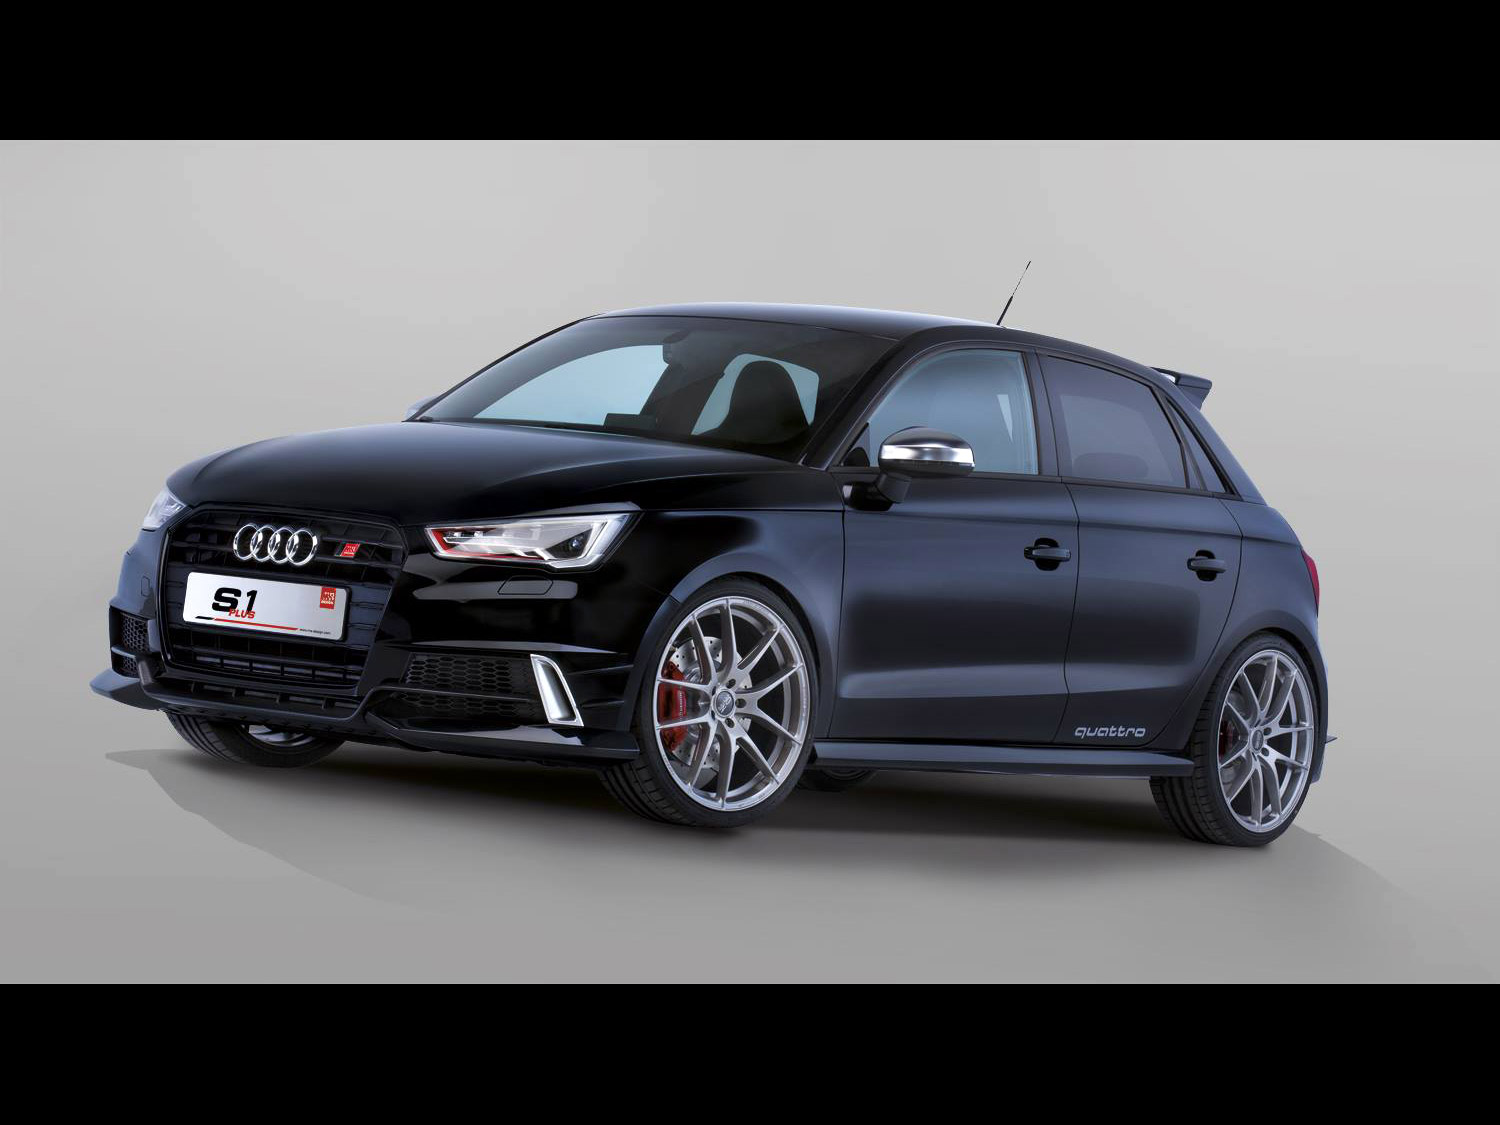 ms design audi s1 sportback. Black Bedroom Furniture Sets. Home Design Ideas